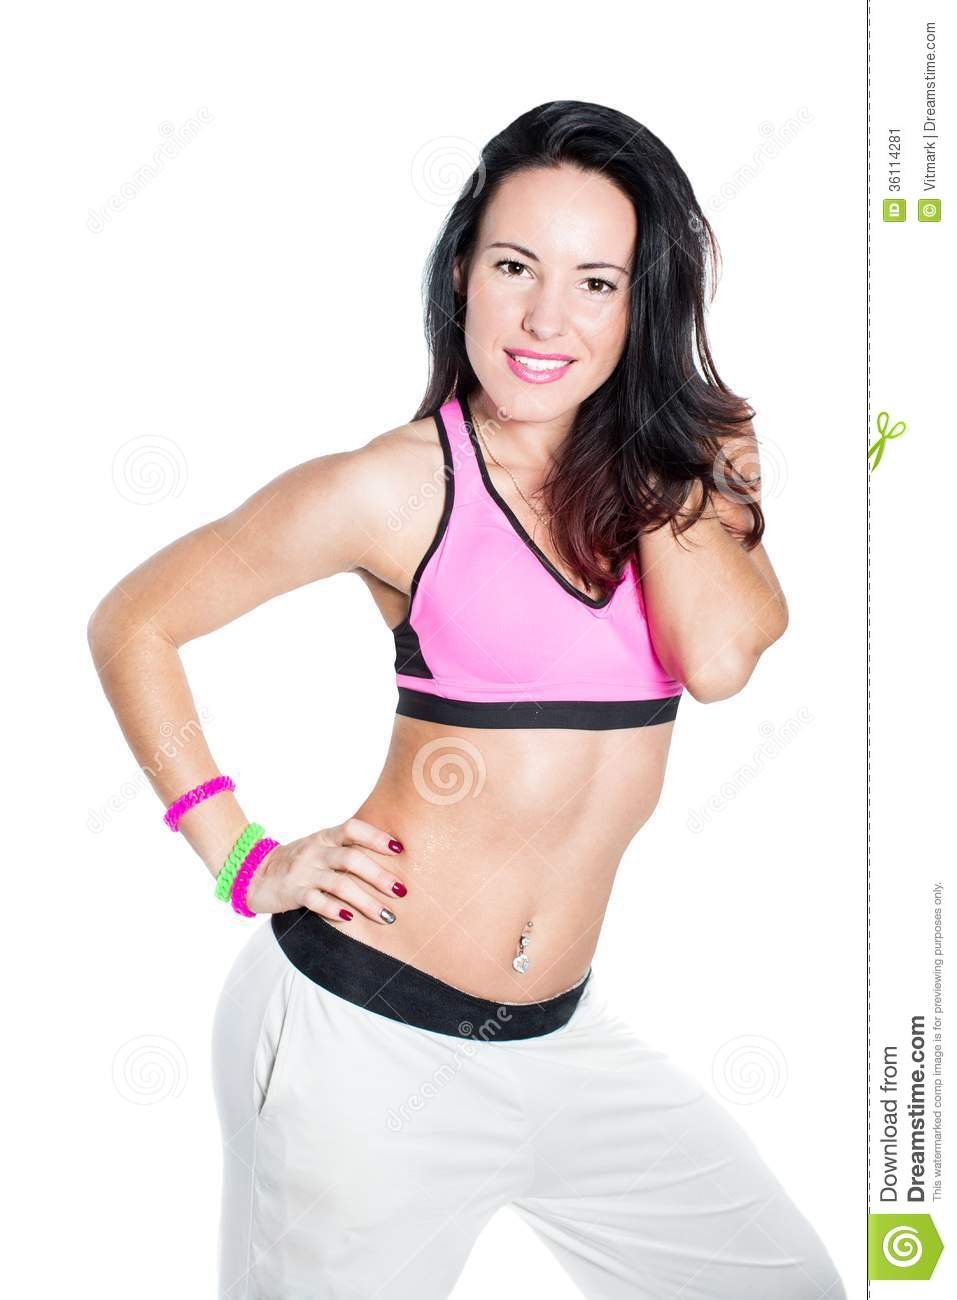 Young woman dancing isolated on white background. Happy cheerful female enjoying fitness